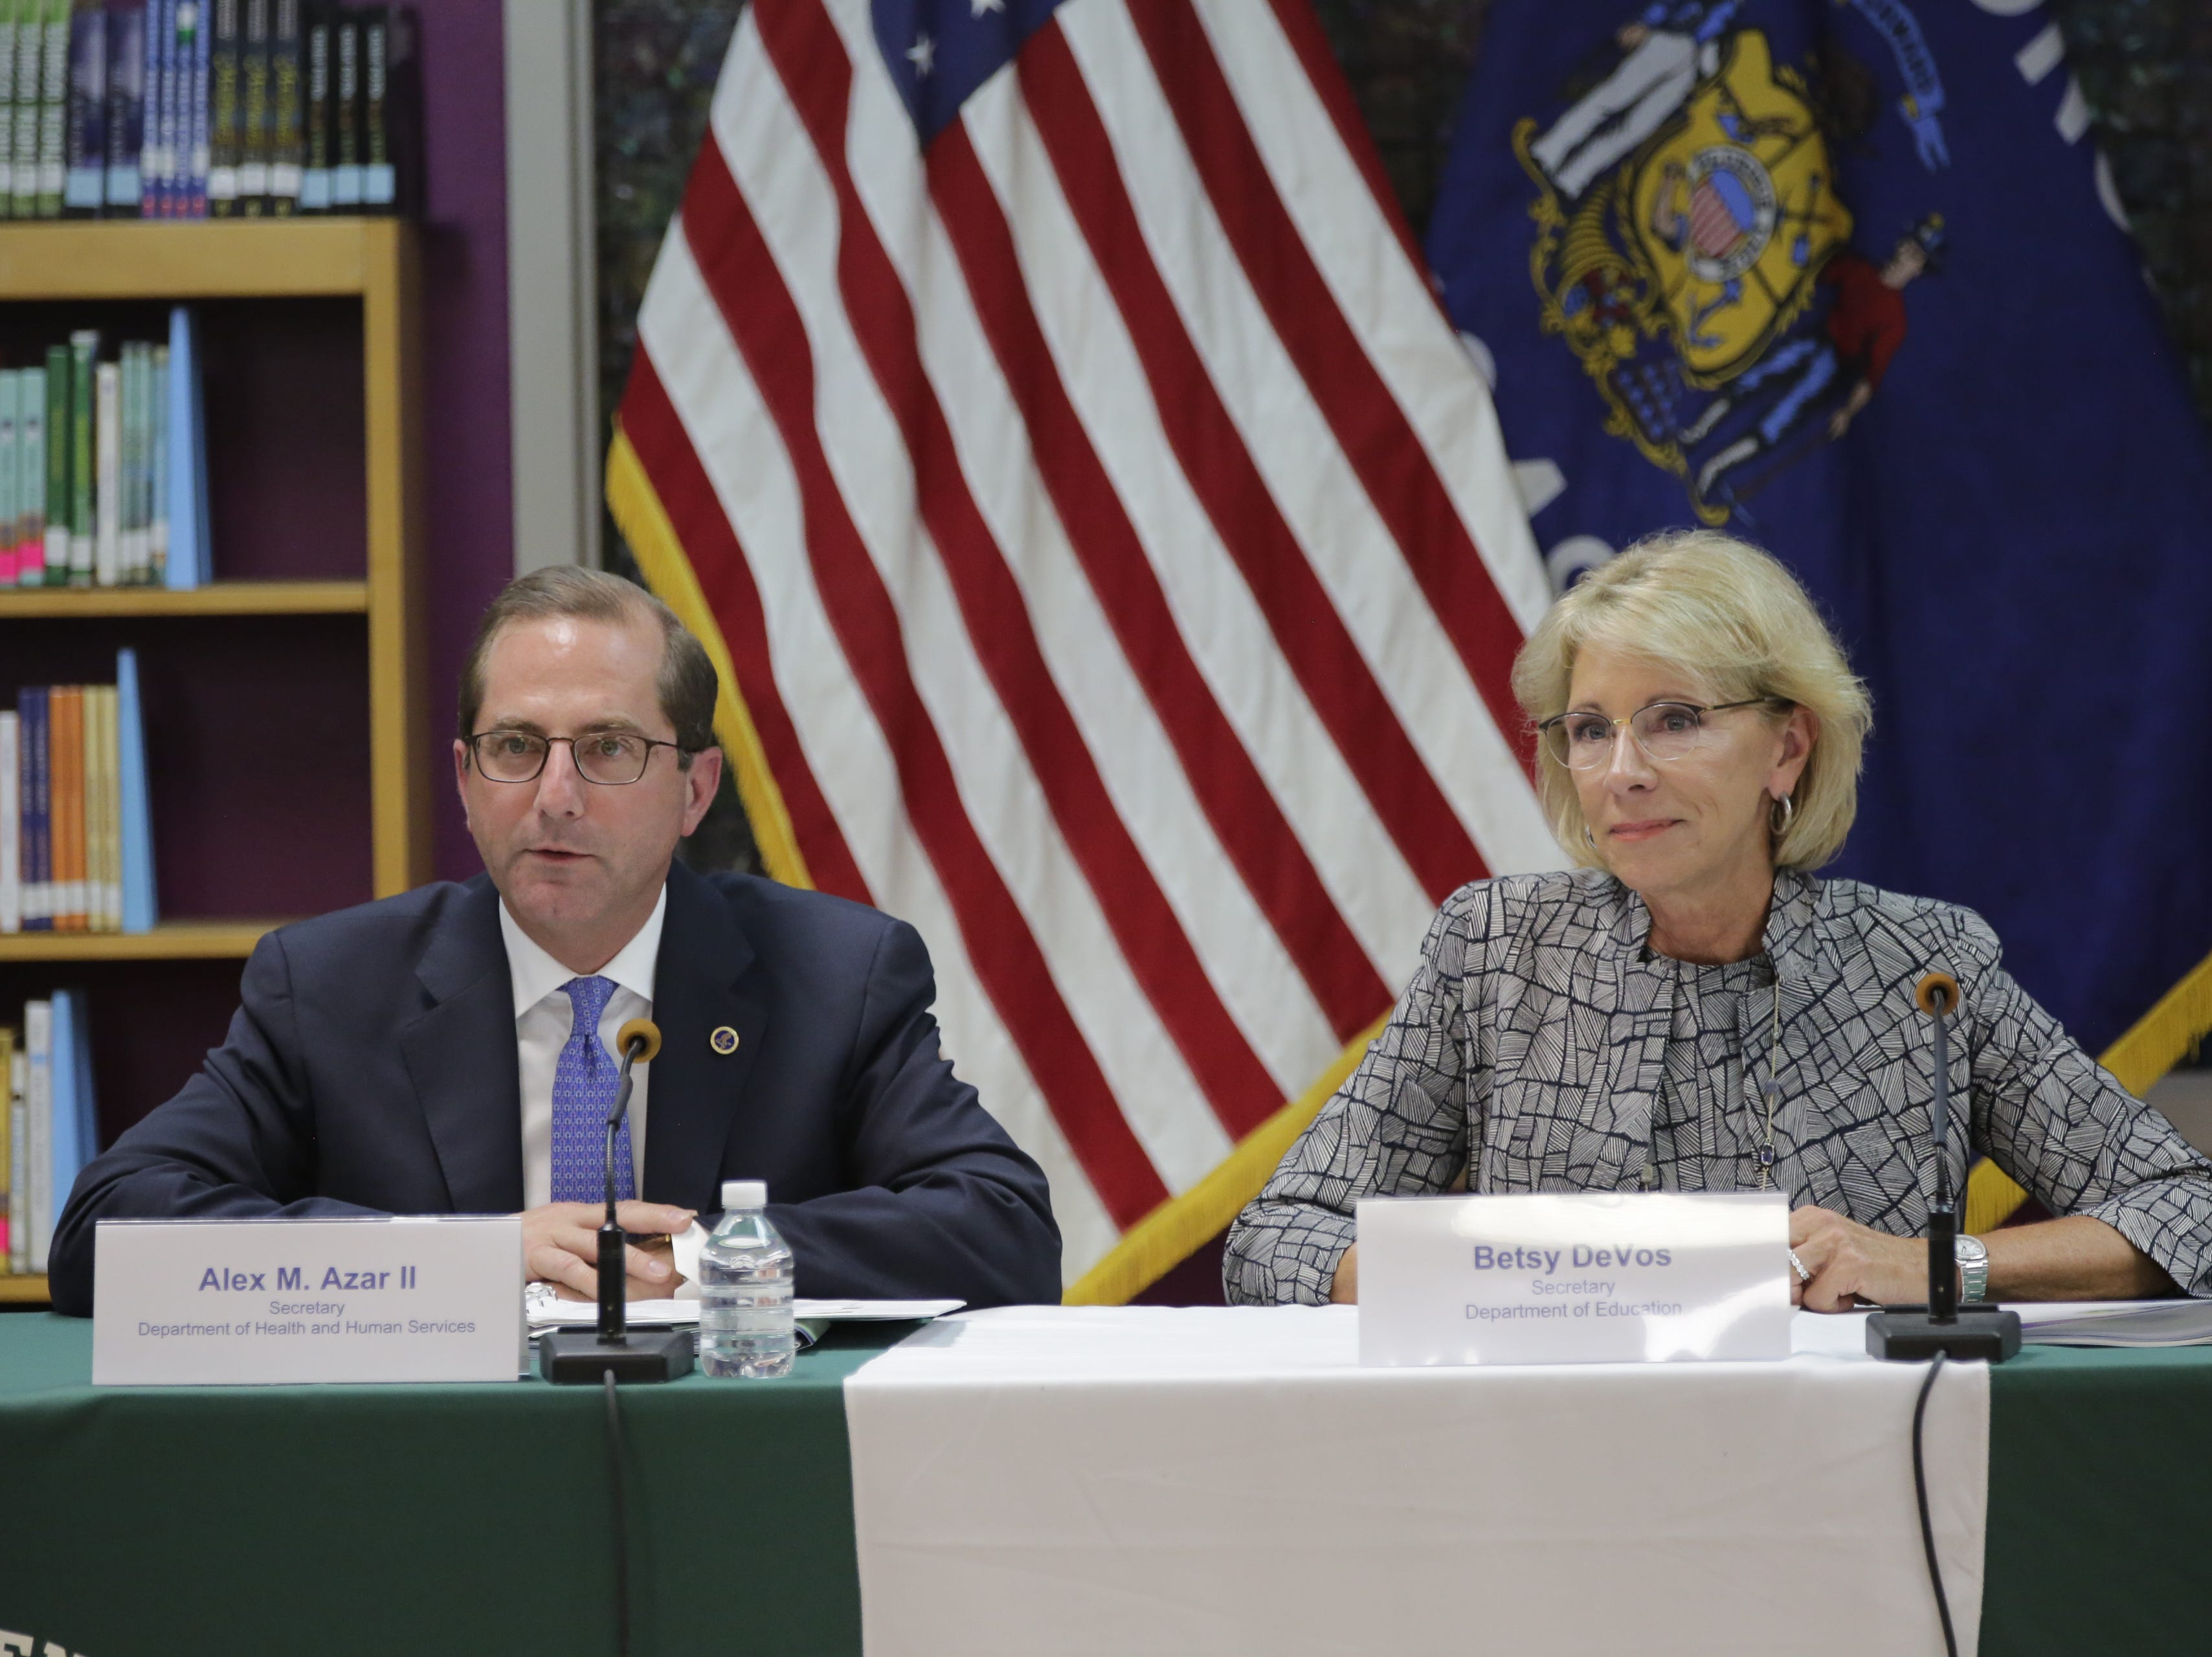 Secretary of the Department of Health and Human Services Alex Azar speaks alongside U.S. Secretary of Education Betsy DeVos at Adams-Friendship Middle School in Adams, Wis. Tuesday, July 24, 2018.